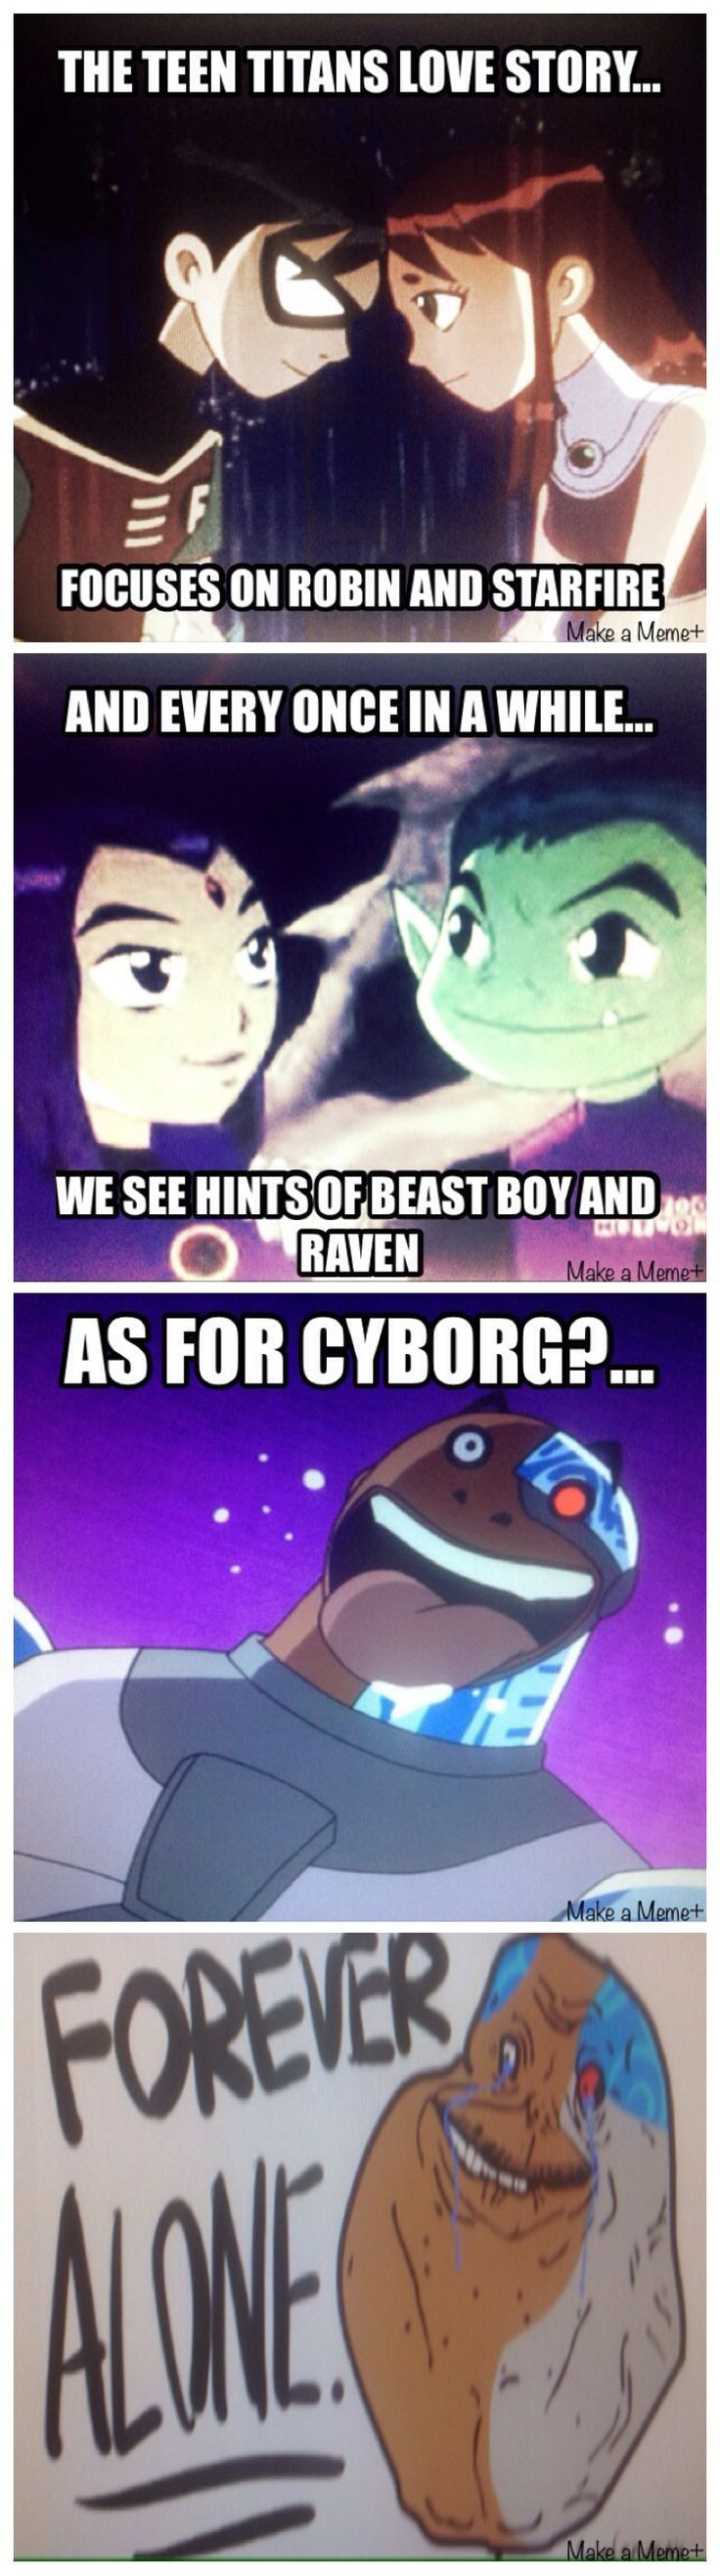 Poor Cyborg, he is forever alone!!! Well I think there was too much Robin and Starfire love in my opinion. I'am a big supporter of Raven and BeastBoy and I think if they made a sixth season then it would have a lot of Raven and BeastBoy love. Come on let's face it, everyone knew from like the first season Robin and Starfire would be together. I mean duh, he thinks she's hot!!!! Also they kissed and had a lot of moments, but Raven and BeastBoy. Come on opposites attract!!!